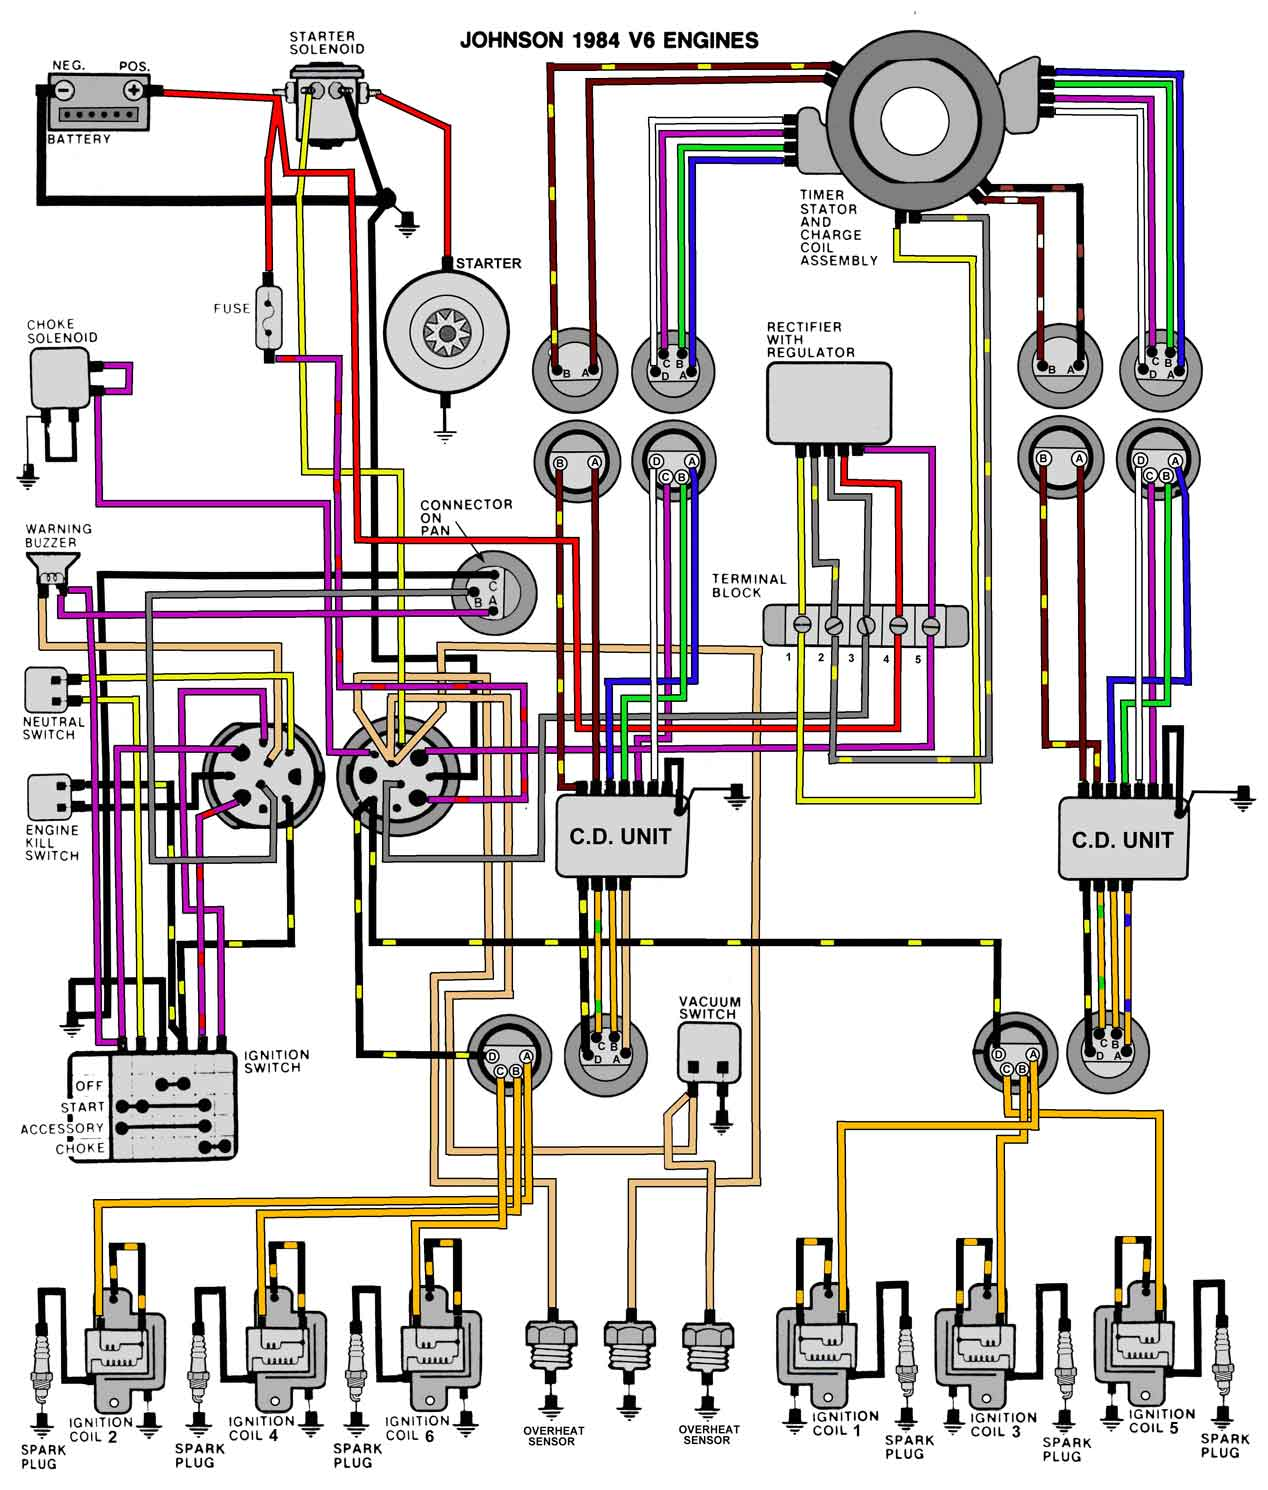 84_V6 boat motor wiring diagram small boat wiring diagram \u2022 wiring wiring diagram for 115 mercury outboard motor at mifinder.co